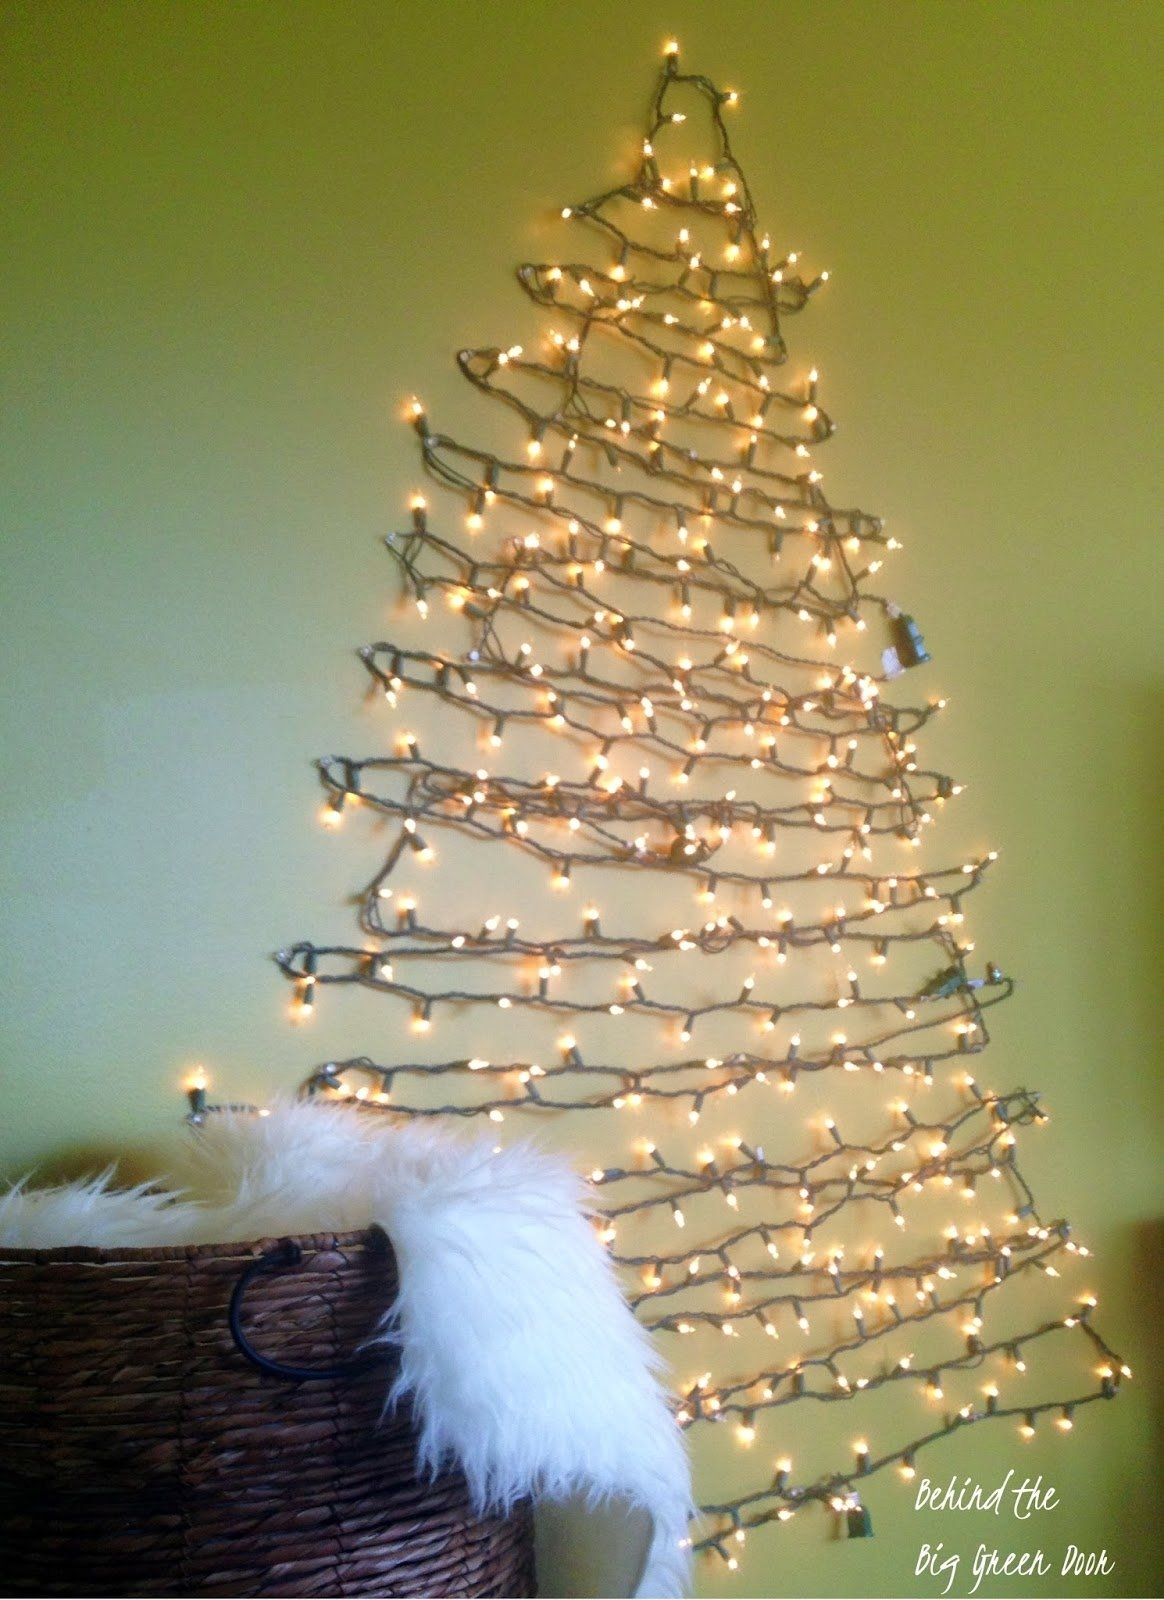 10 Amazing Christmas Tree Ideas For Small Spaces space saving christmas tree ideas for small spaces apartments 2020